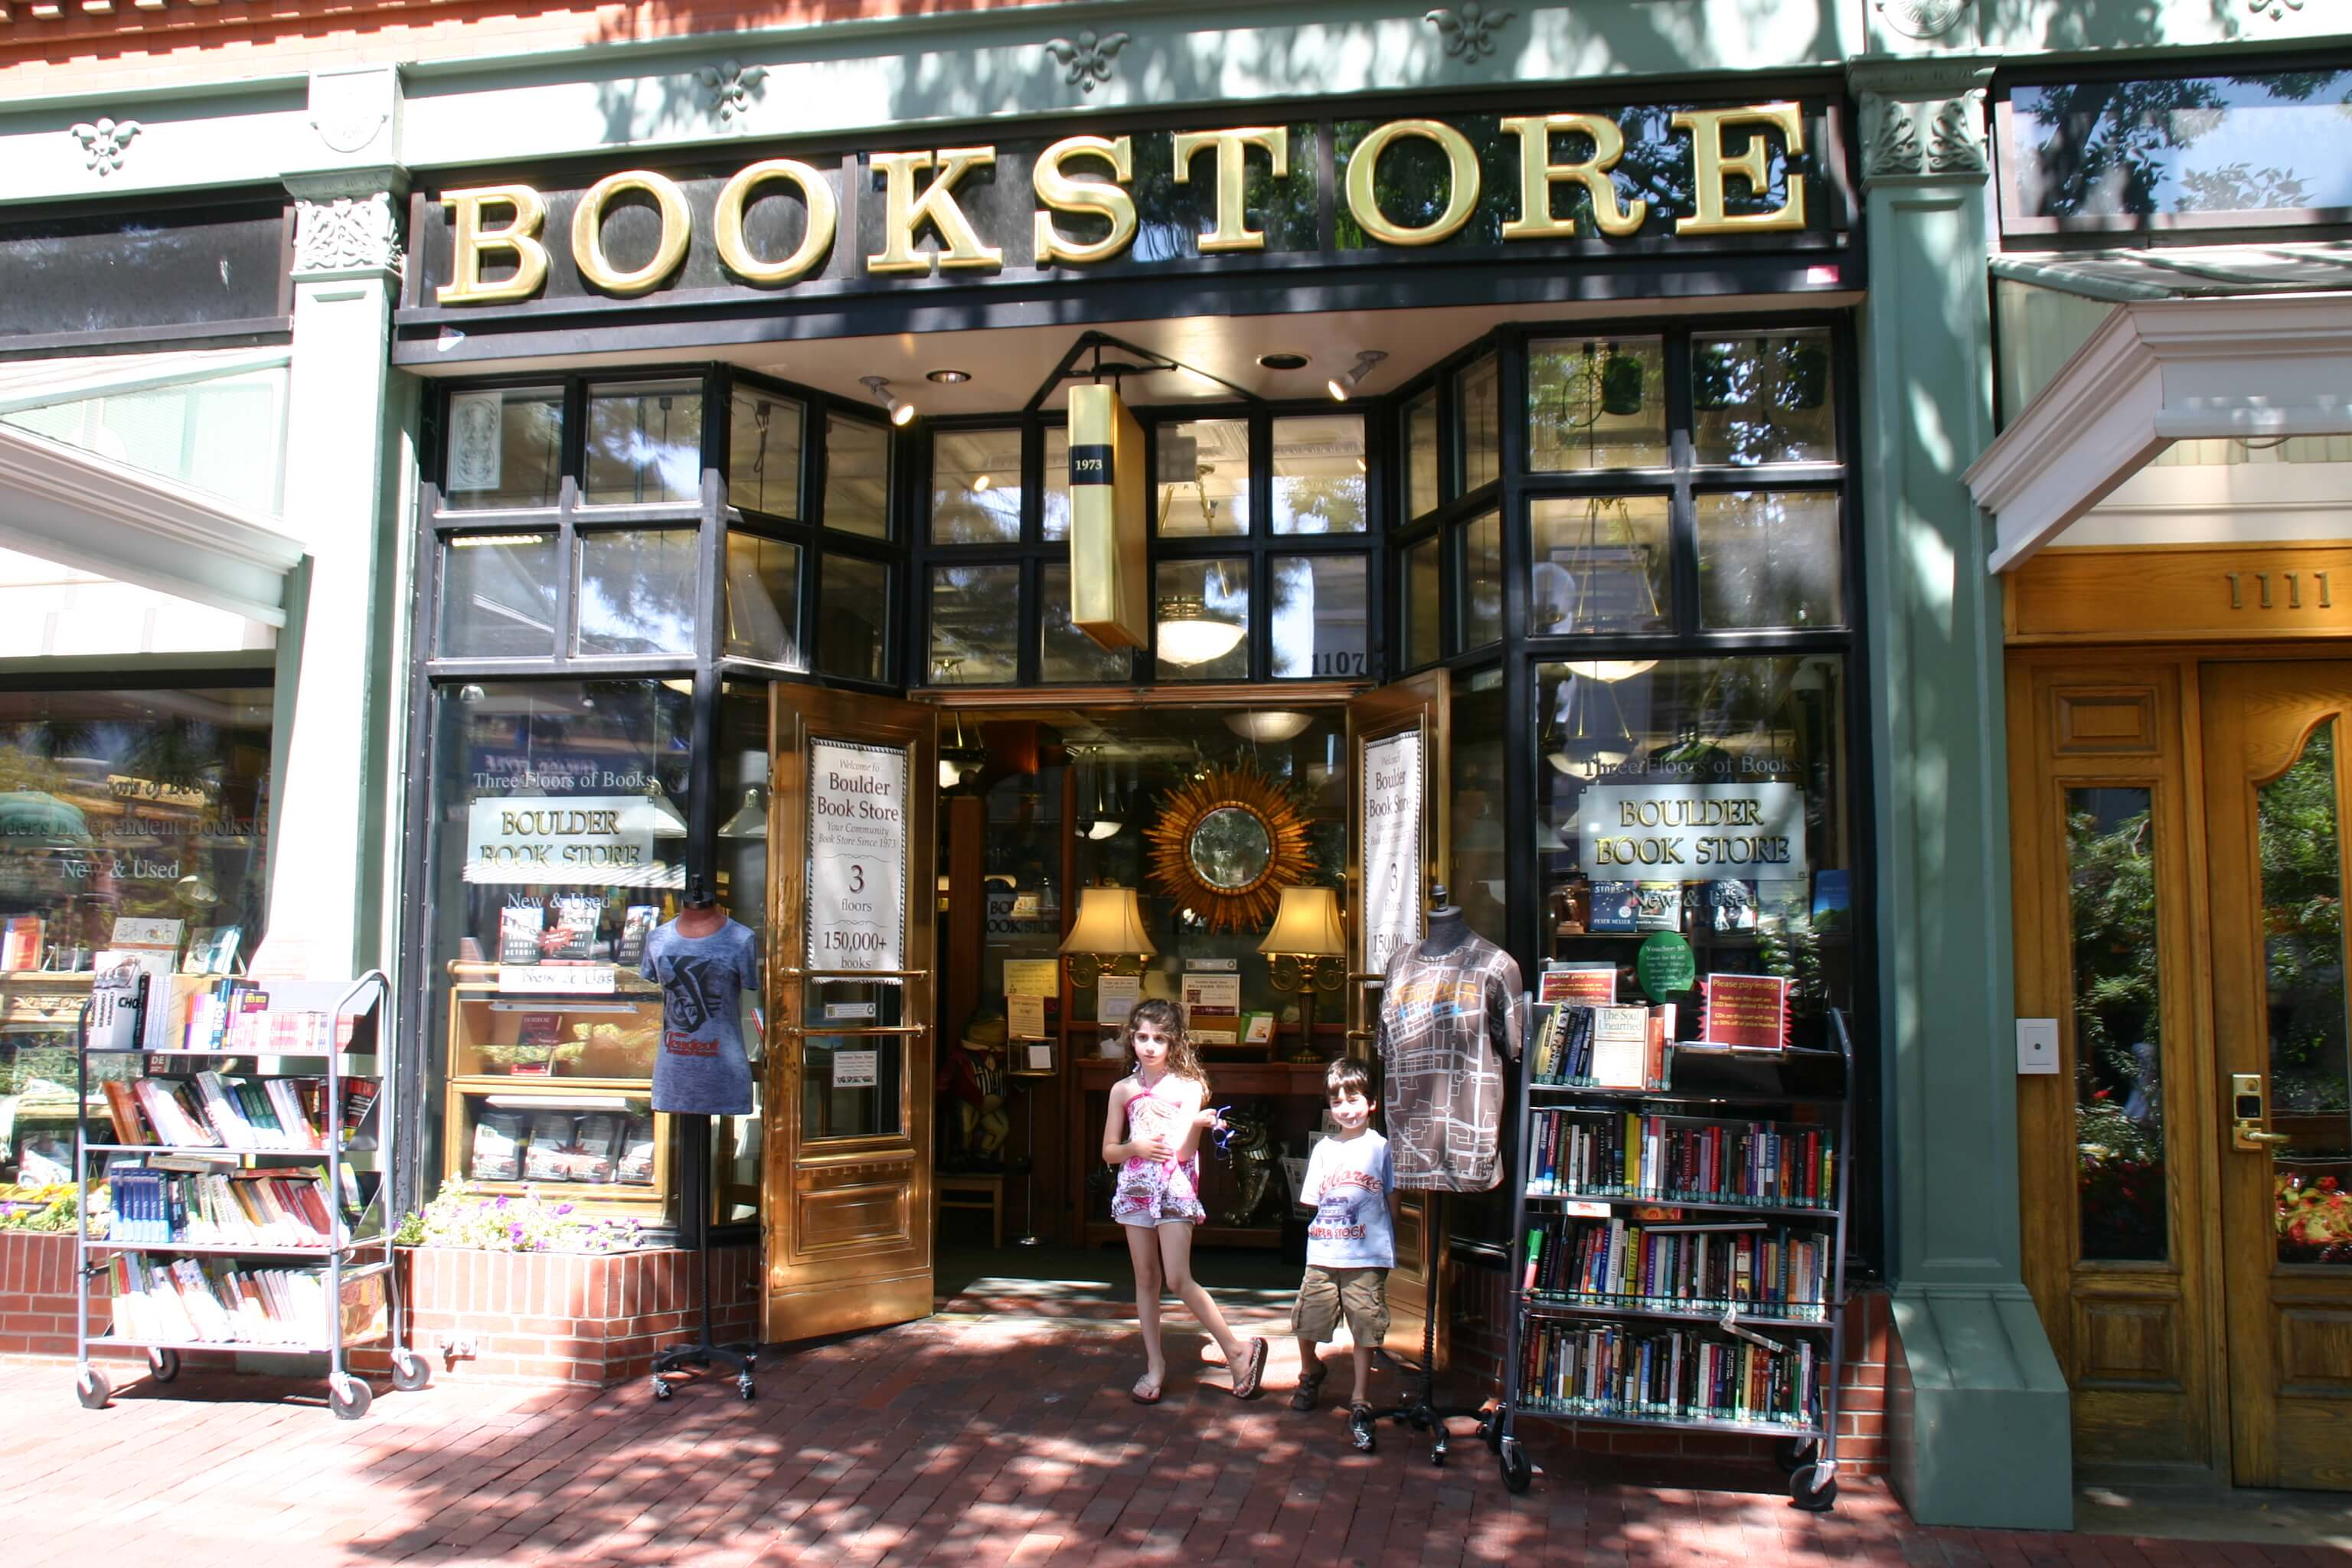 bookstore child take bookstores 5th december writers saturday owned given cases each ever part hutchison sandra